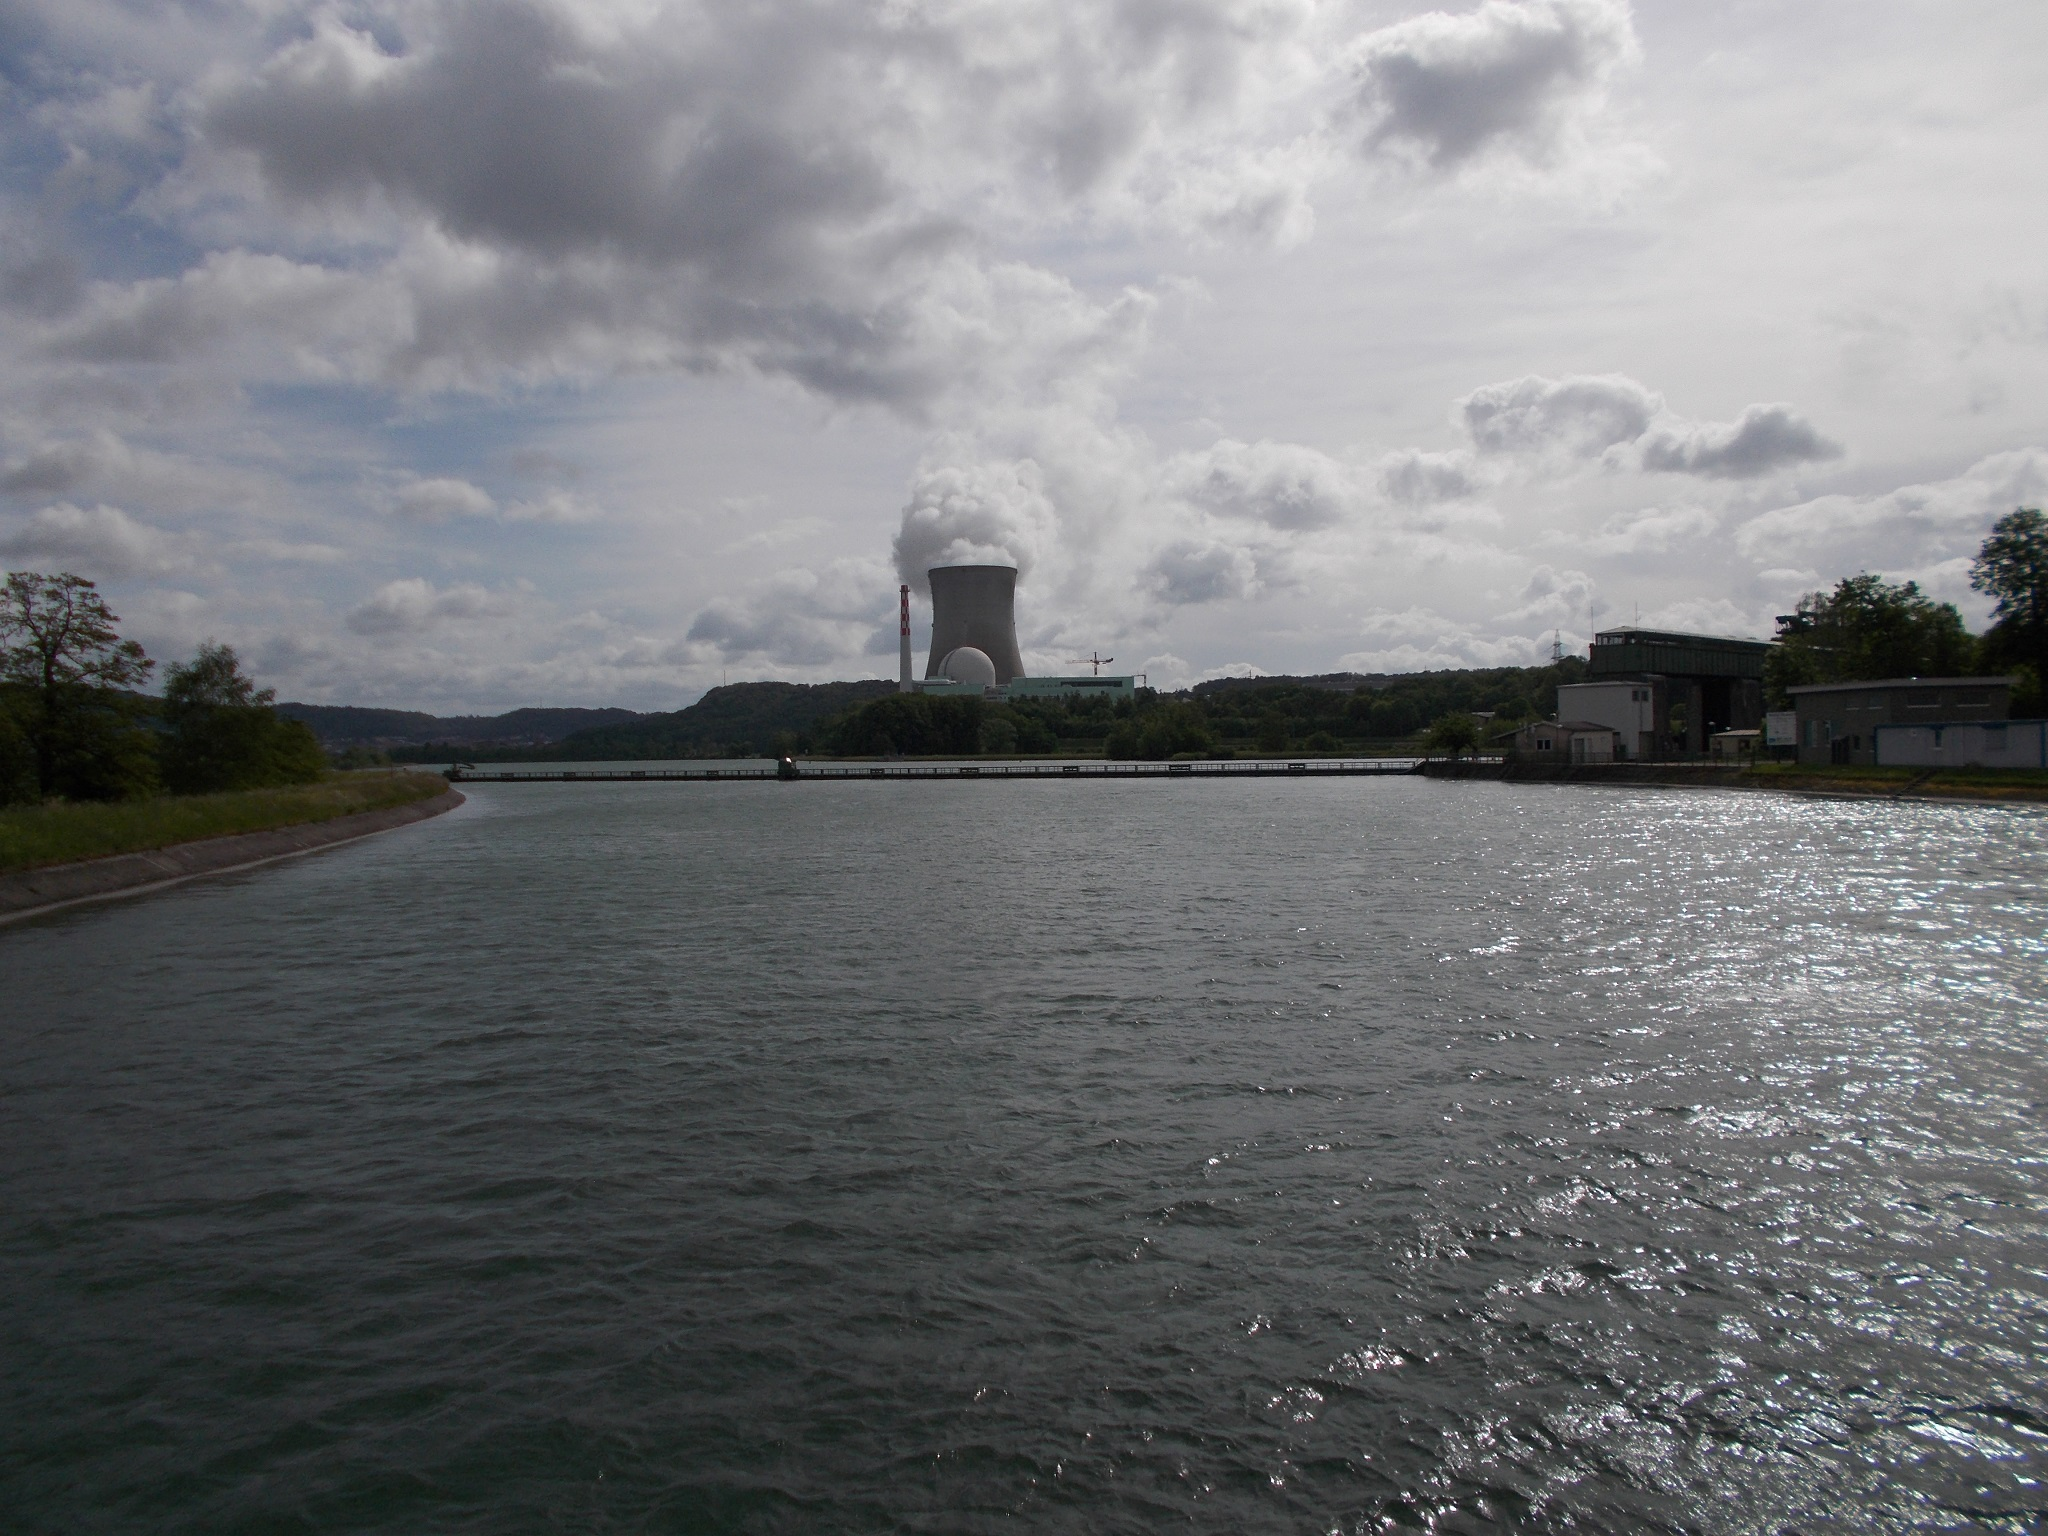 The Rhine river with the cooling tower of a nuclear power plant visible in the distance.